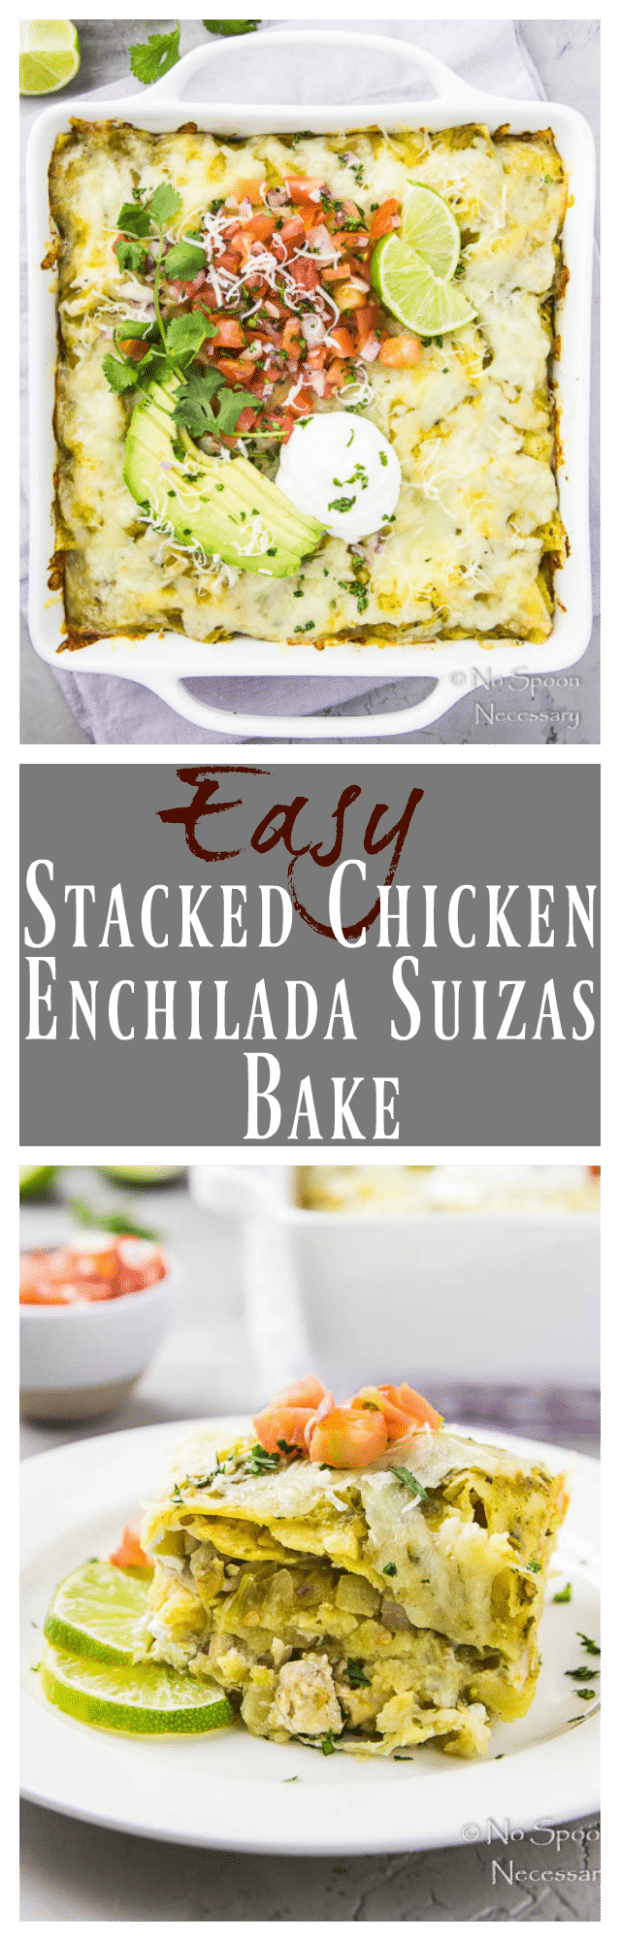 Easy Stacked Enchilada Suizas Bake